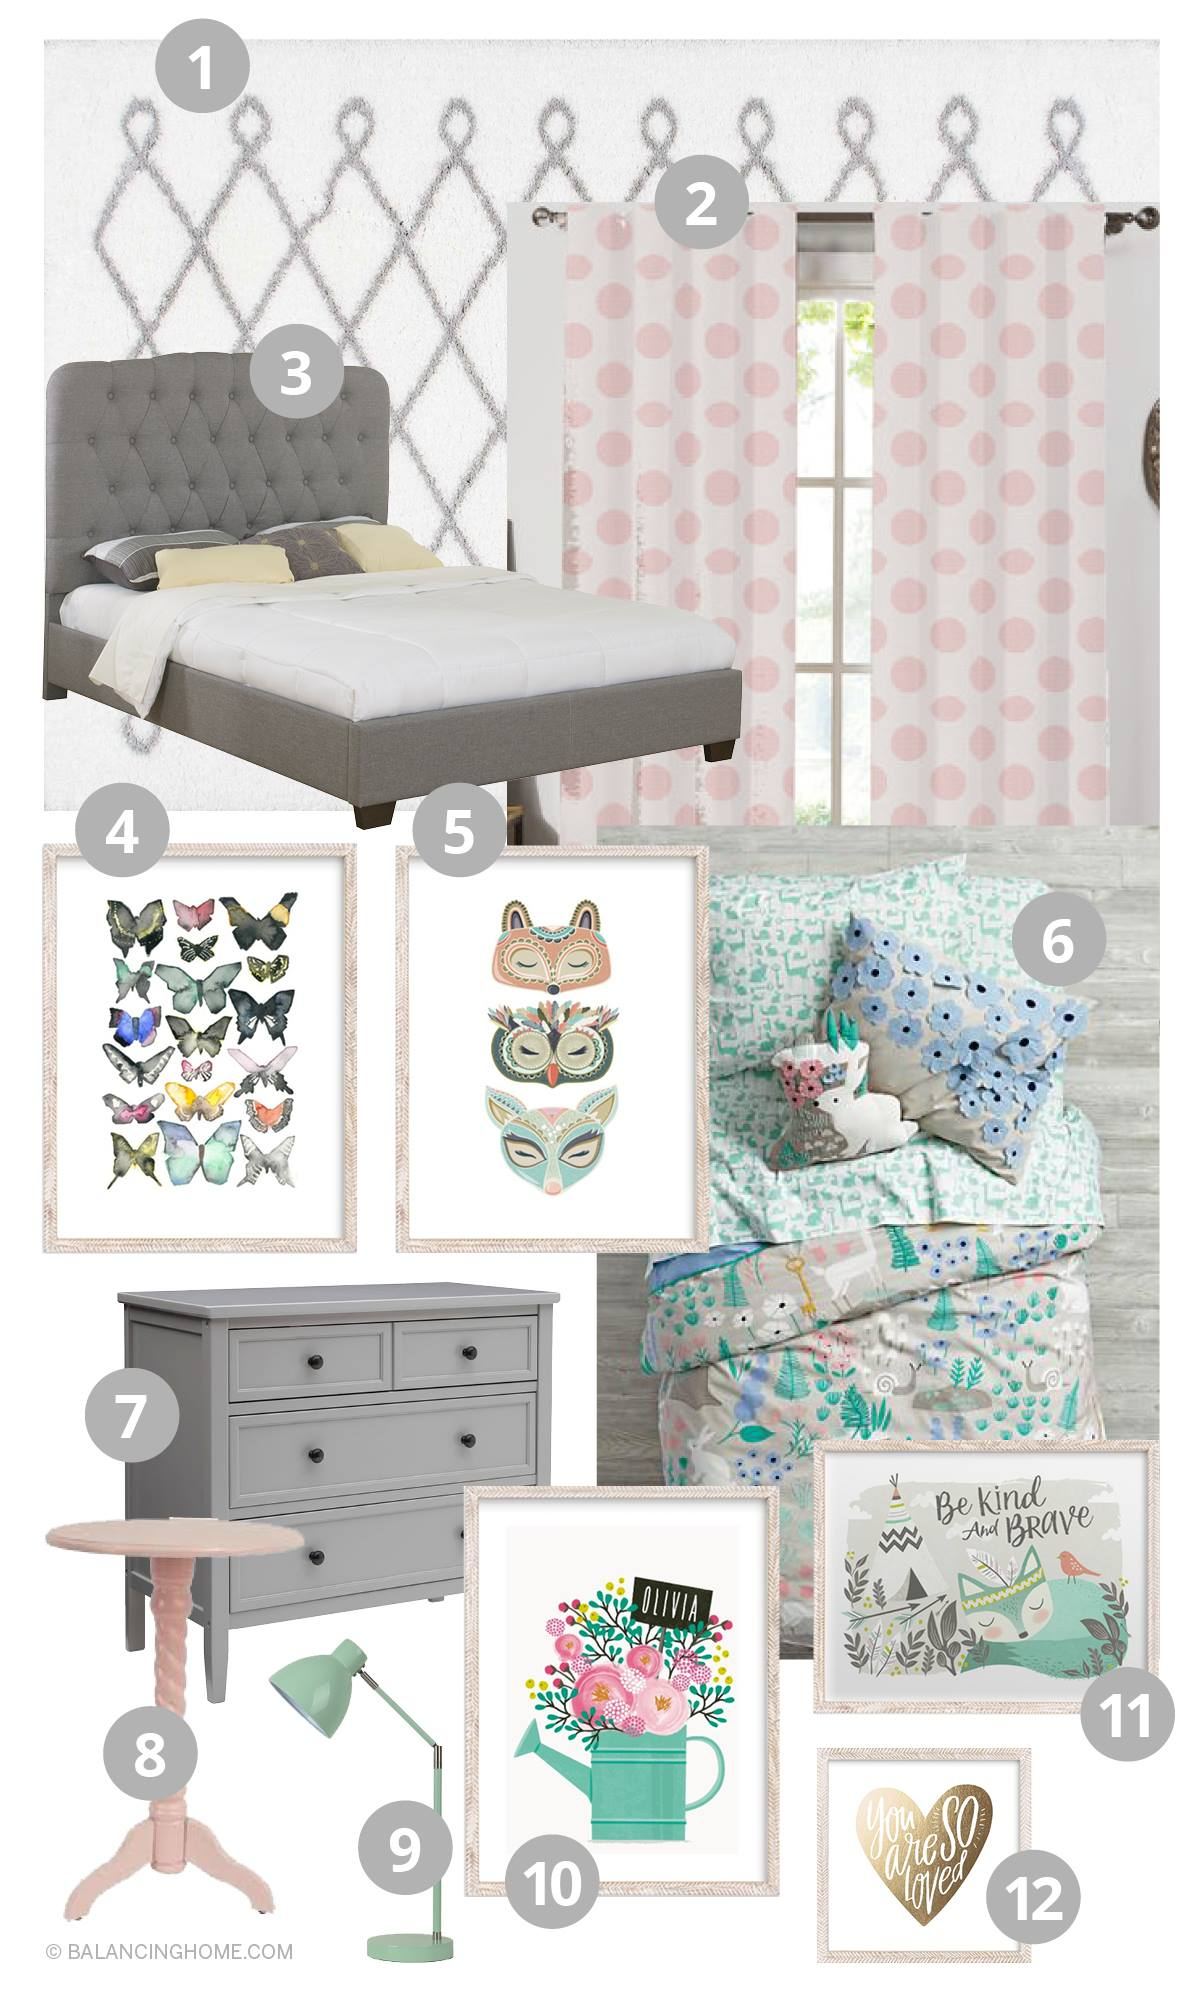 Girl Bedroom Decorating Ideas Moodboard woodland forest folktale, gray, pink, mint, mint, periwinkle